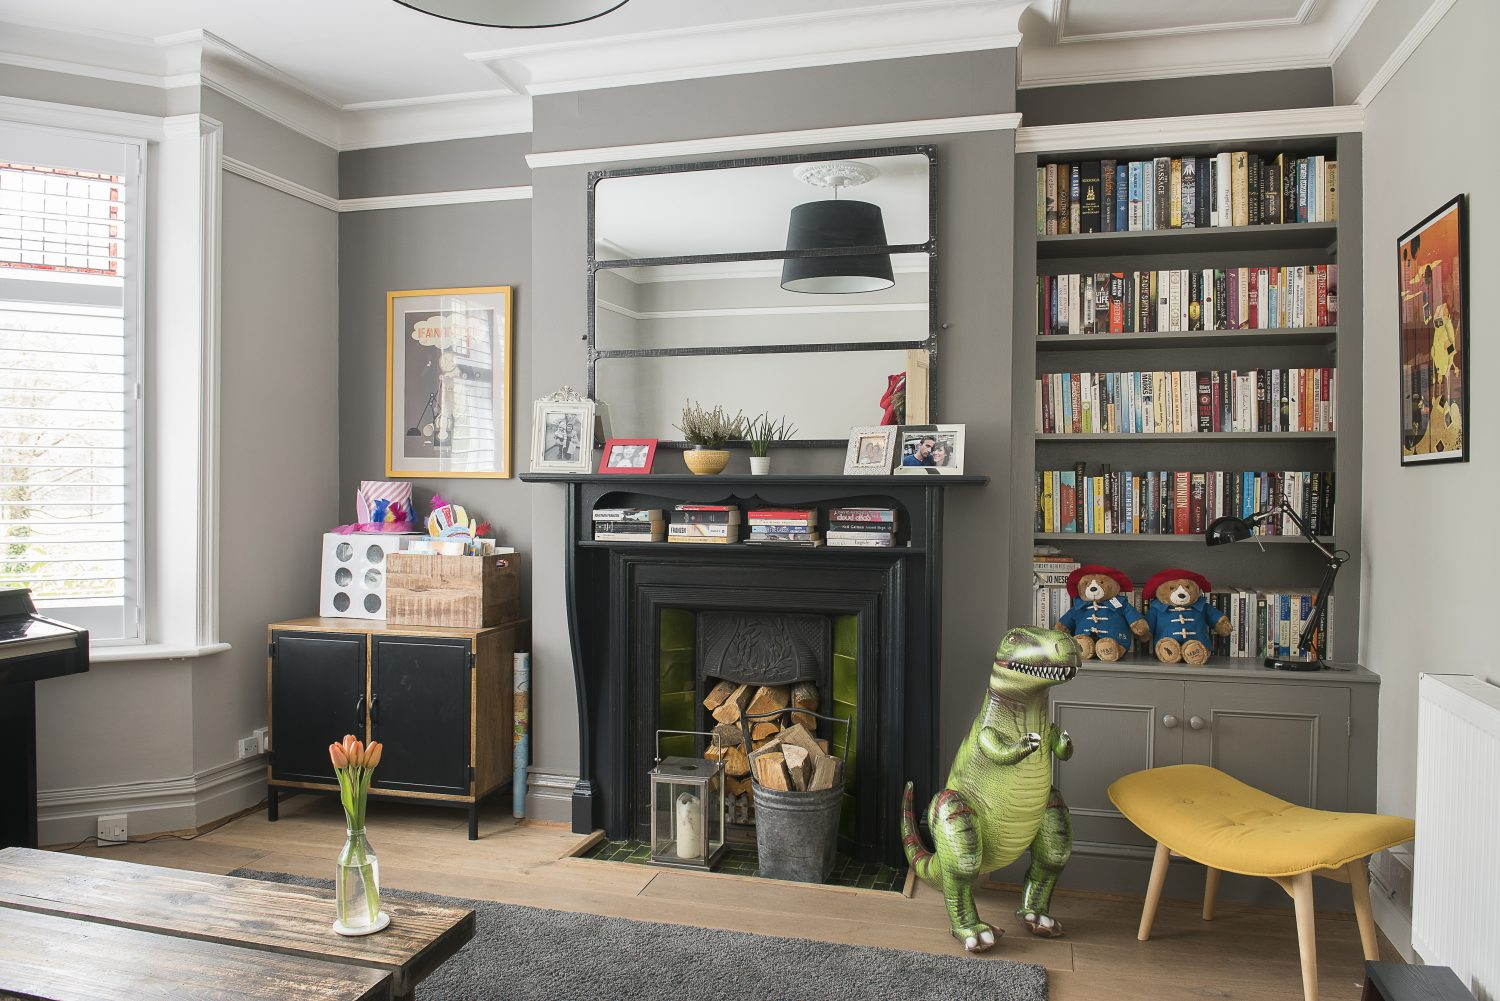 Caroline initially intended on turning the playroom at the front of the house into a snug. The walls are painted in Pavilion Gray and Mole's Breath by Farrow & Ball and prints on the wall were found at Battersea Affordable Art Fair